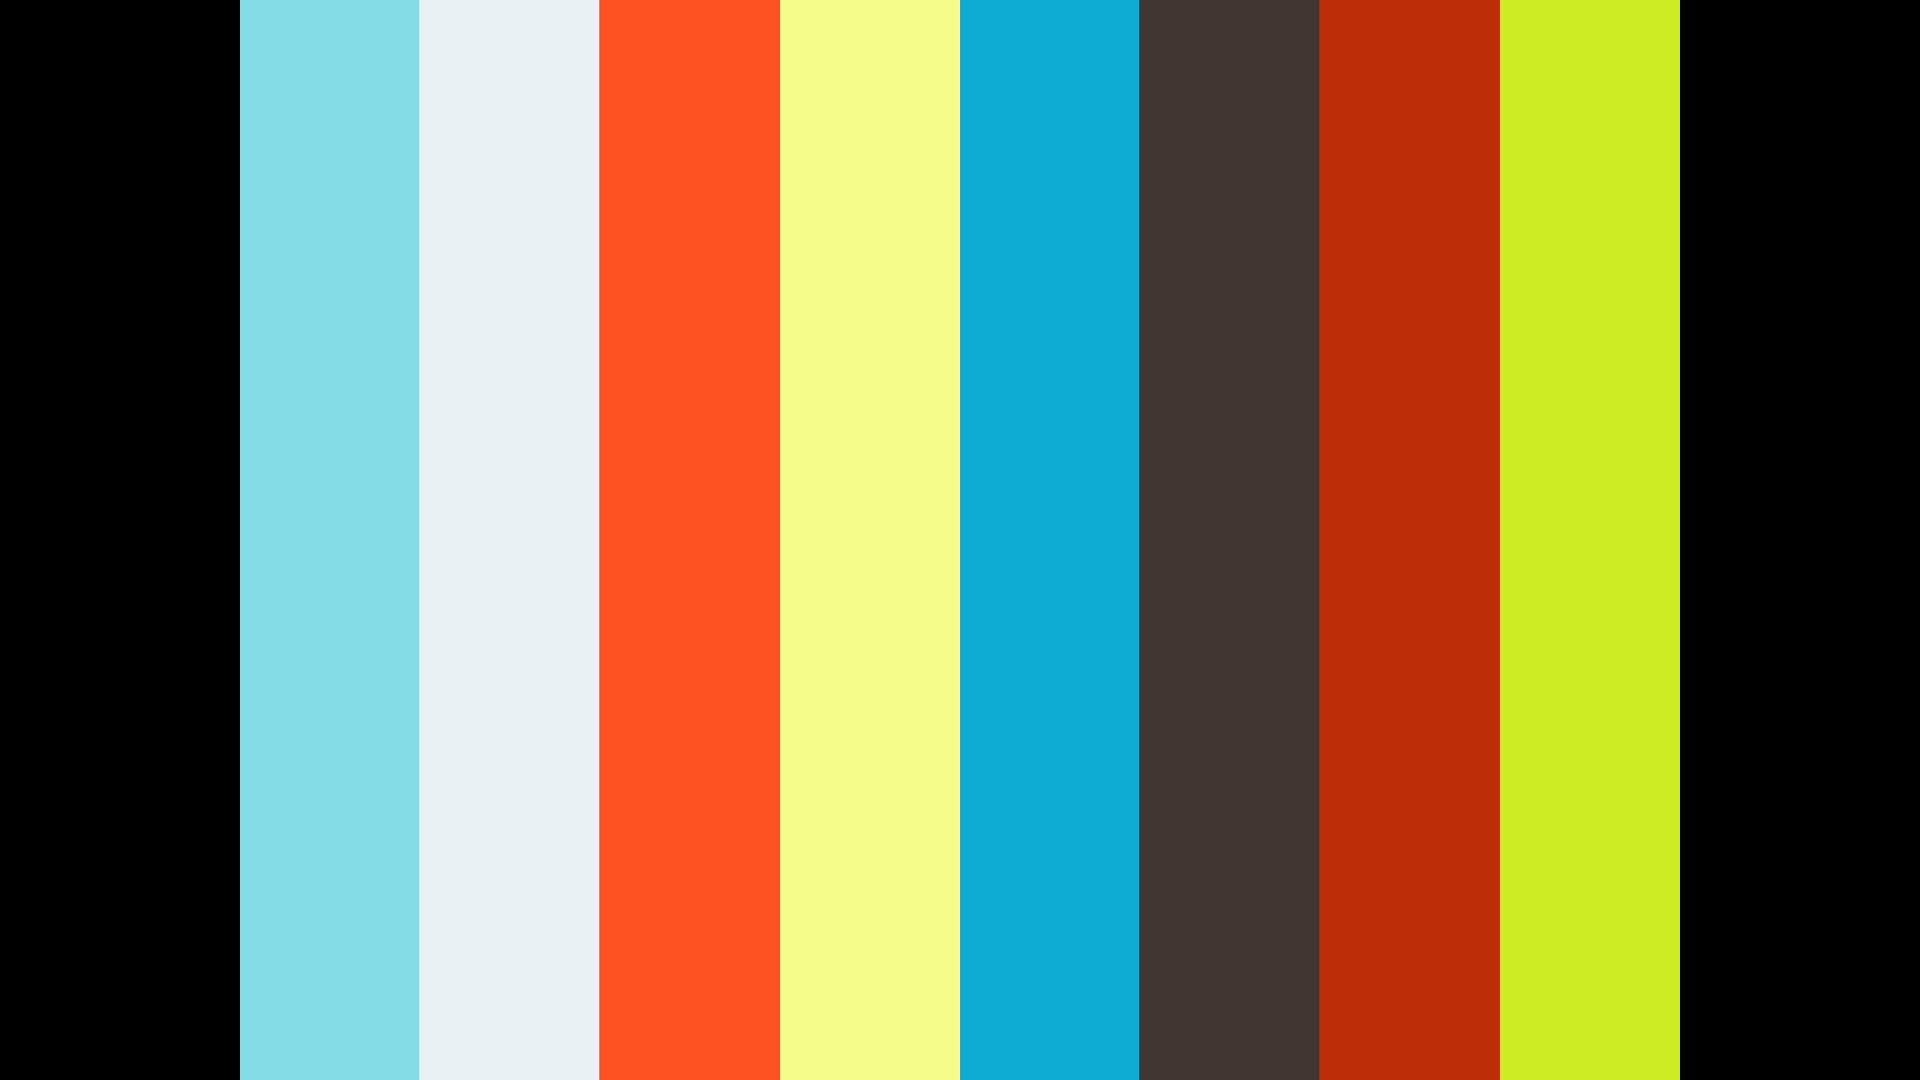 04 - Spectral Measurements : Prism and Gratings